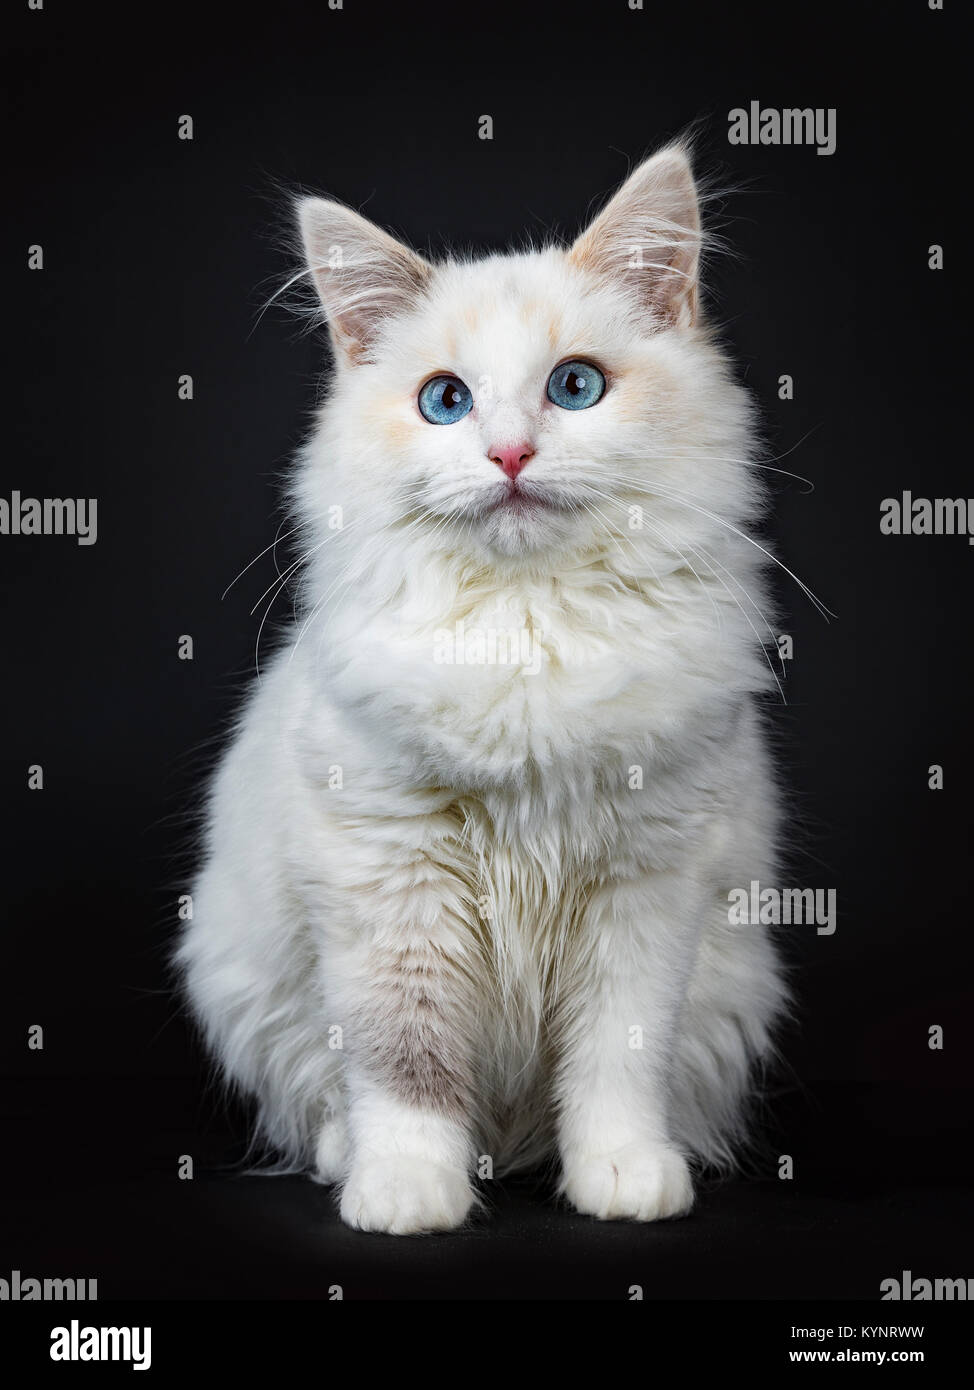 Blue eyed ragdoll cat / kitten sitting isolated on black background looking at the lens - Stock Image